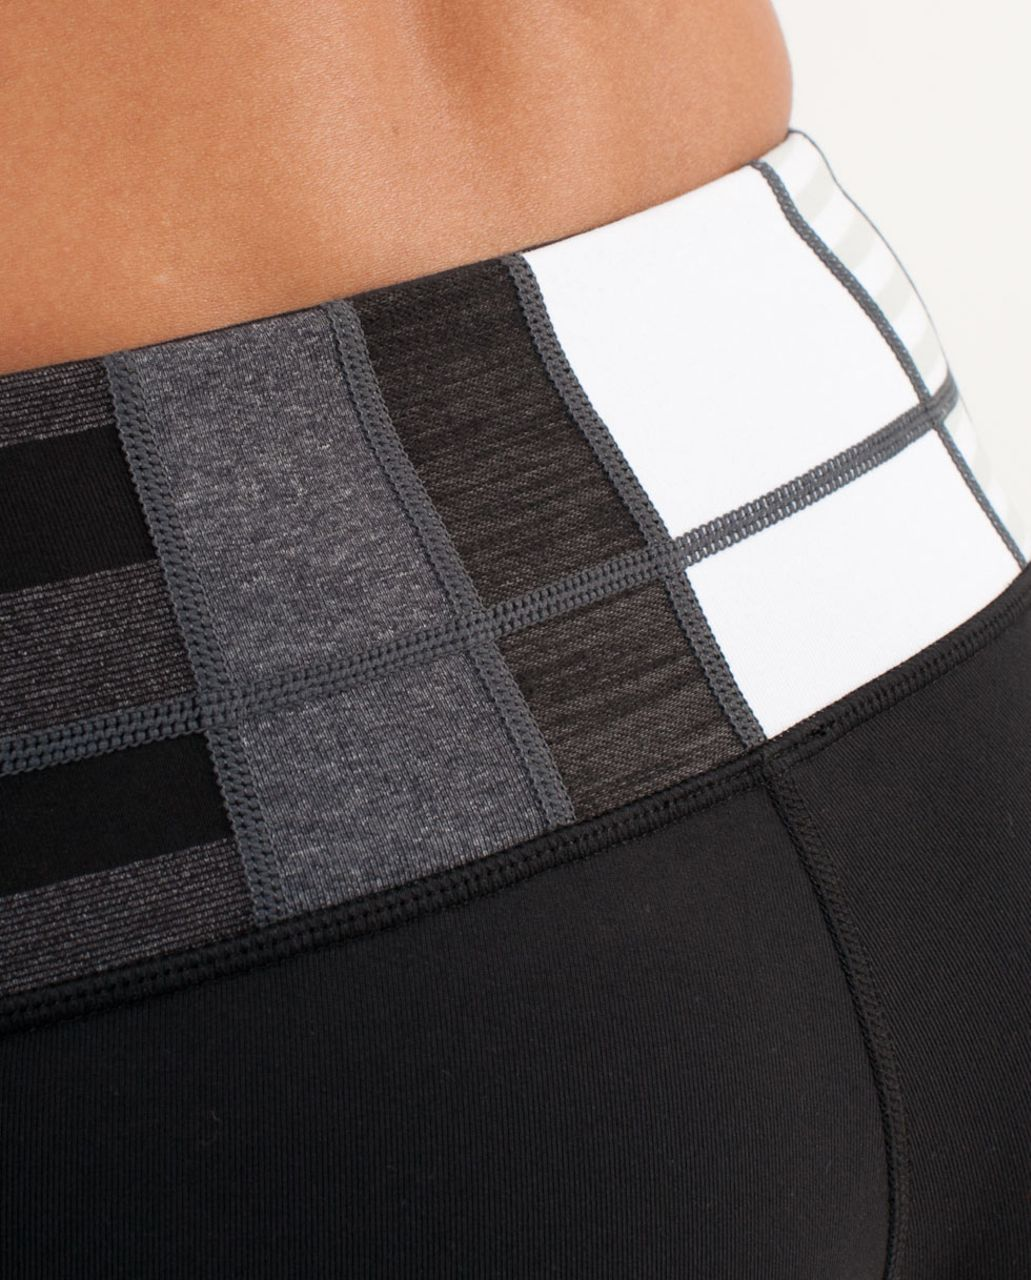 Lululemon Groove Pant (Tall) - Black /  Quilting Winter 20